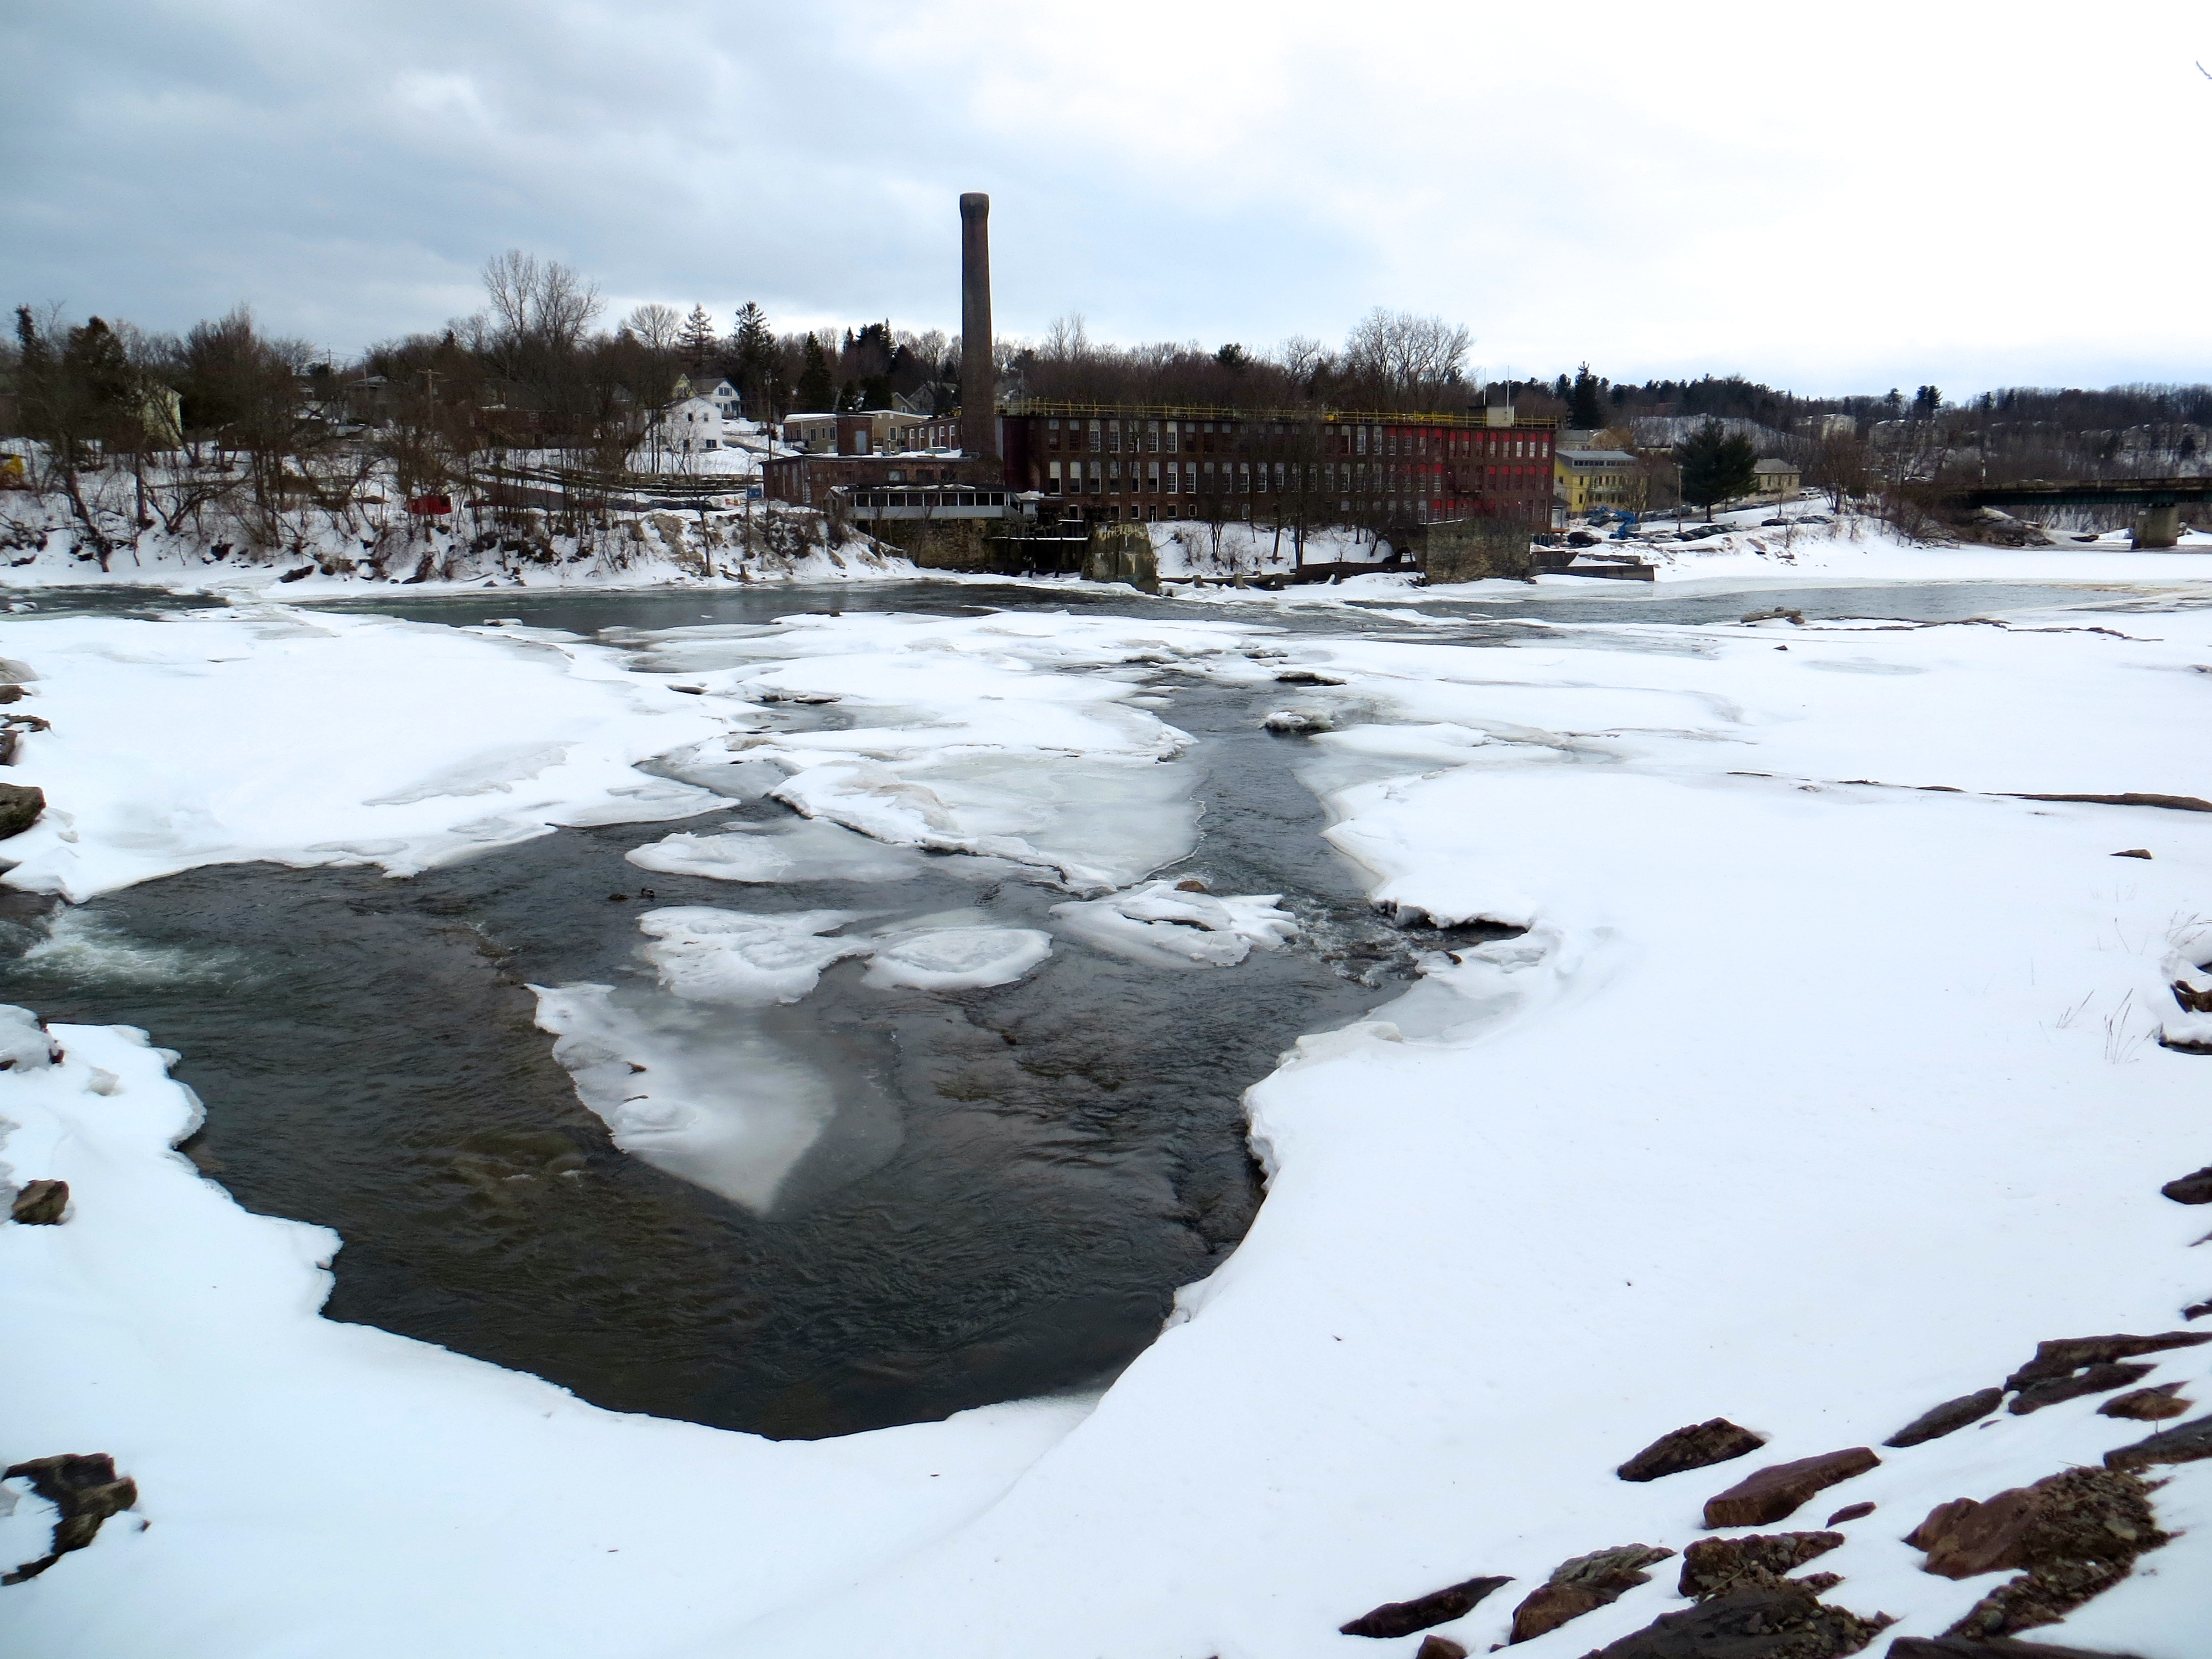 The Winooski River is still in winter mode